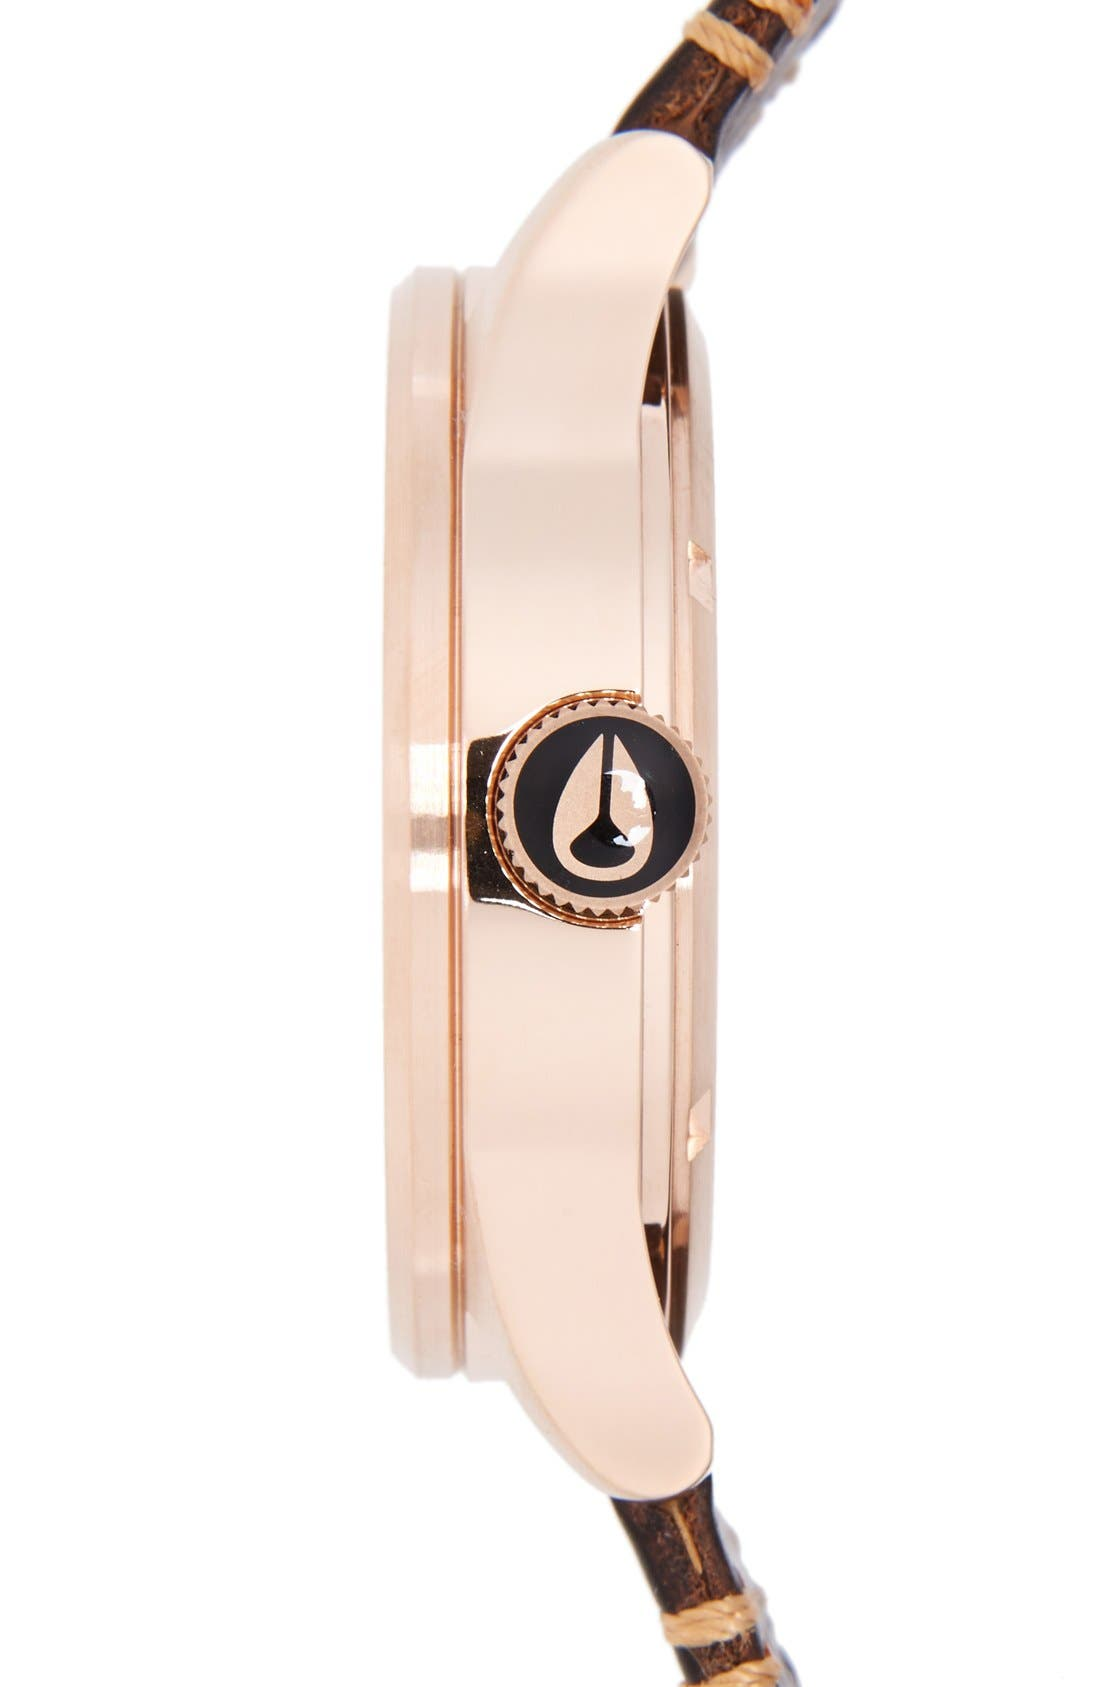 NIXON, 'The Sentry' Leather Strap Watch, 42mm, Alternate thumbnail 4, color, BROWN/ ROSE GOLD/ GUNMETAL